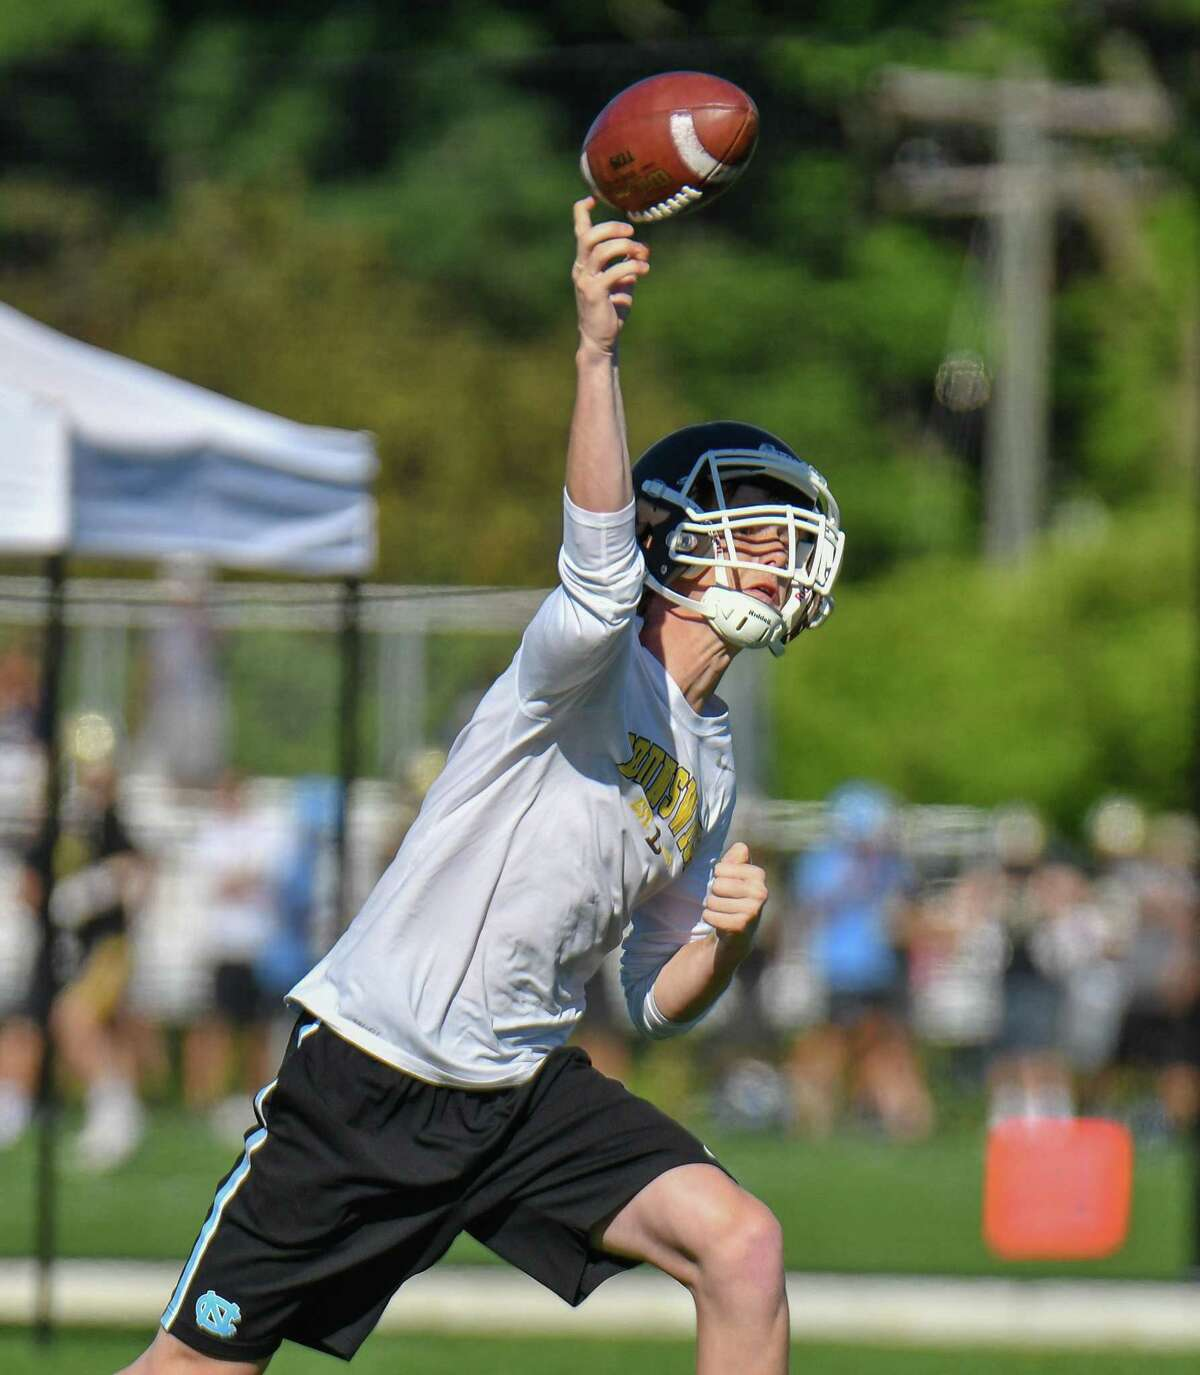 Quarterback Fin Signer of the Brunswick School passes during the 11th Annual Grip It and Rip It competition on Saturday July 7, 2018 at New Canaan High School in New Canaan, Connecticut.